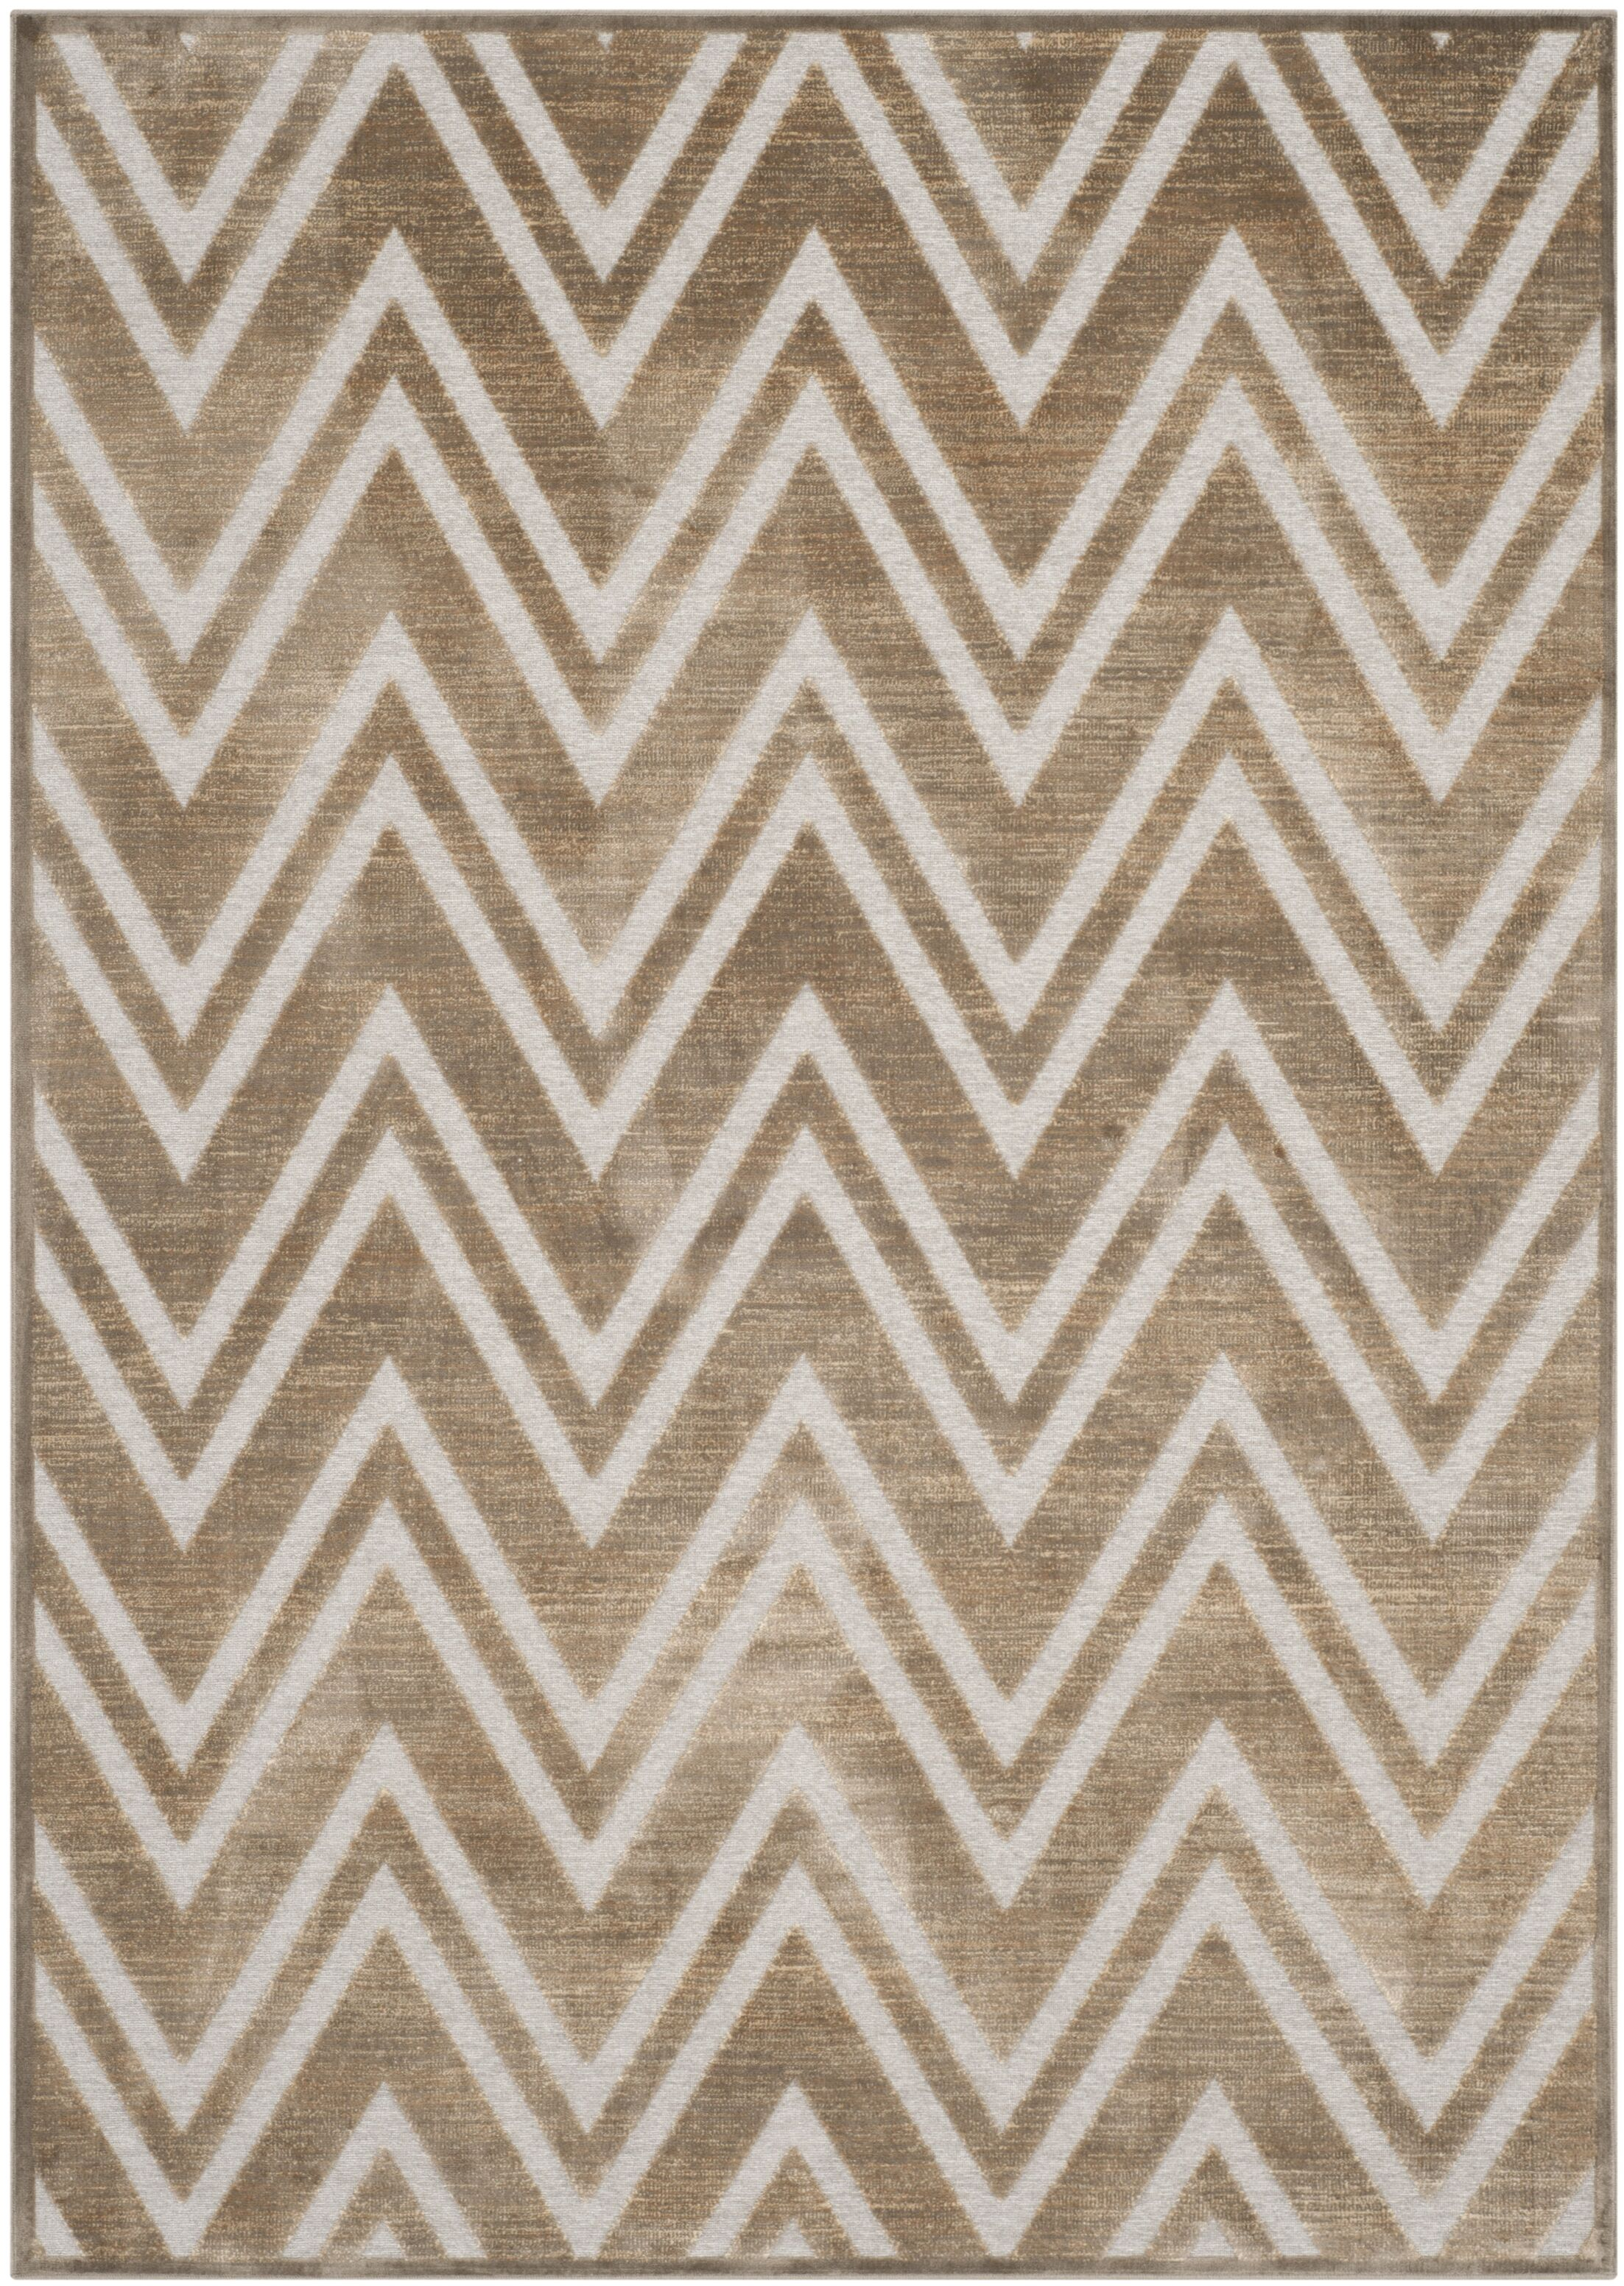 Gabbro Brown/Ivory Area Rug Rug Size: Rectangle 4' x 5'7